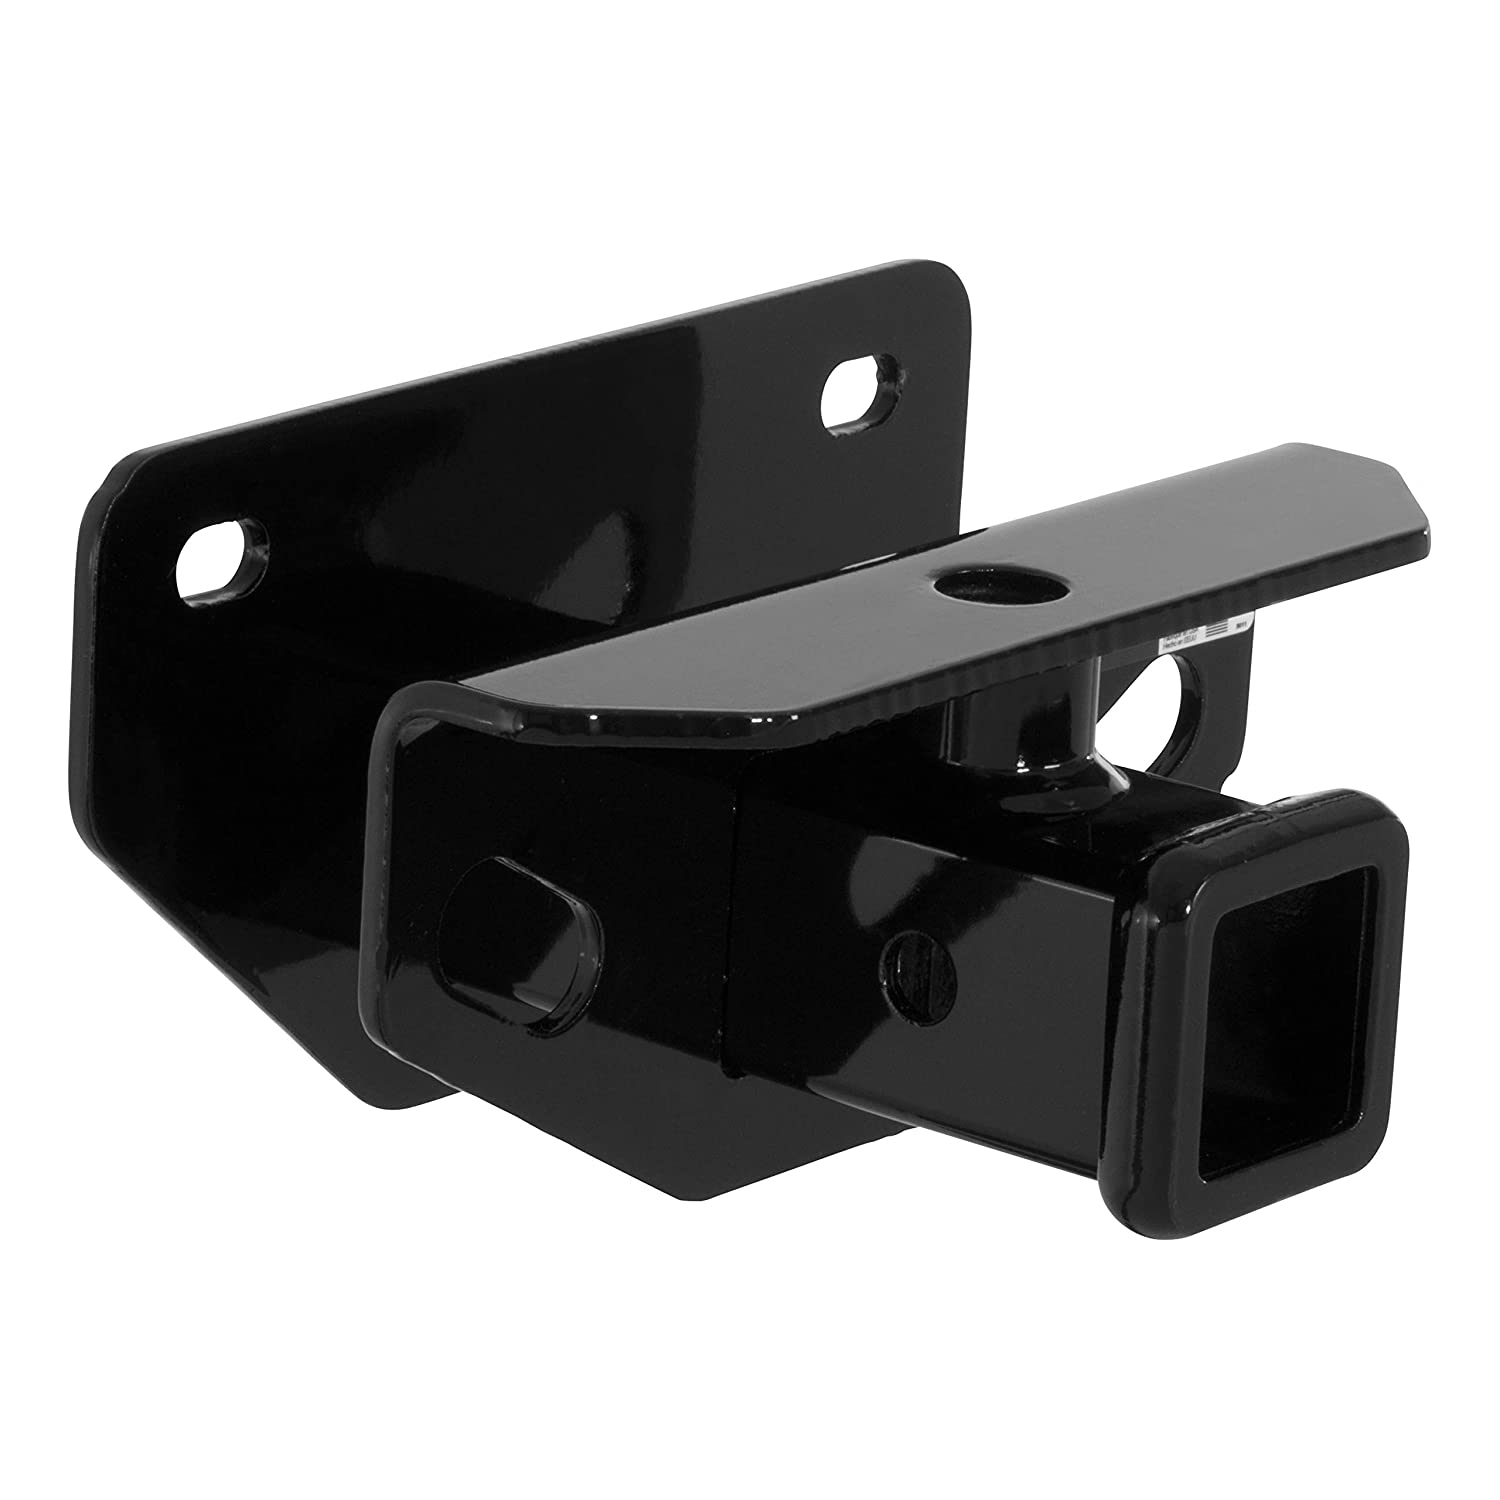 2500 or 3500 and Dodge Ram 1500 2-Inch Receiver for Select Ram 1500 2500 or 3500 CURT 13333 Class 3 Trailer Hitch